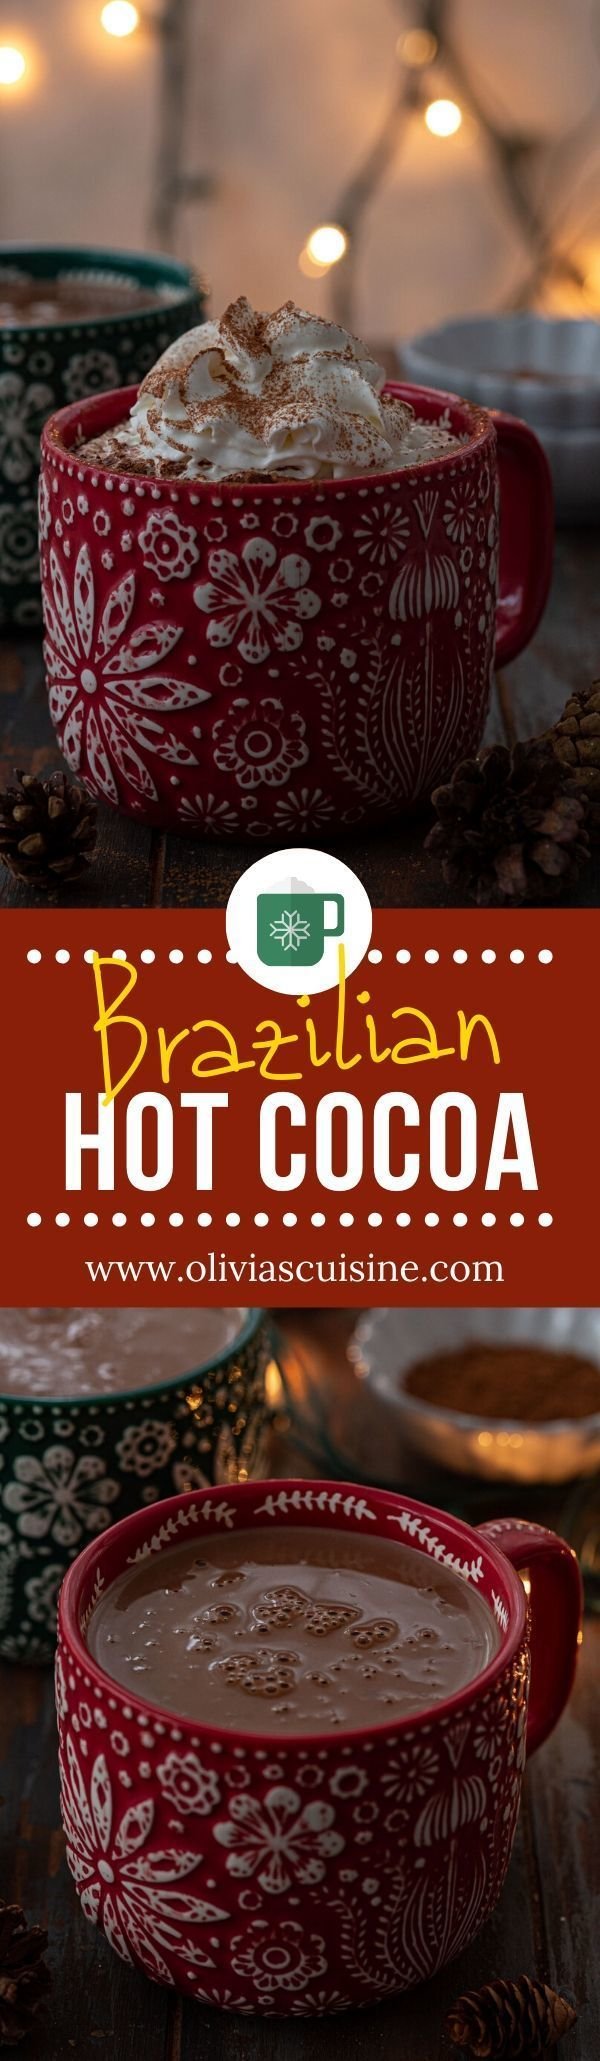 Brazilian Hot Cocoa | www.oliviascuisine.com | Brazilian Hot Cocoa is thick, silky and unbelievably creamy! A decadent treat to warm you up and sooth your soul. You'll want to sip this all winter long!(Follow @oliviascuisine for more delicious recipes!) #hotcocoa #hotchocolate #brazilianfood #comfortfood